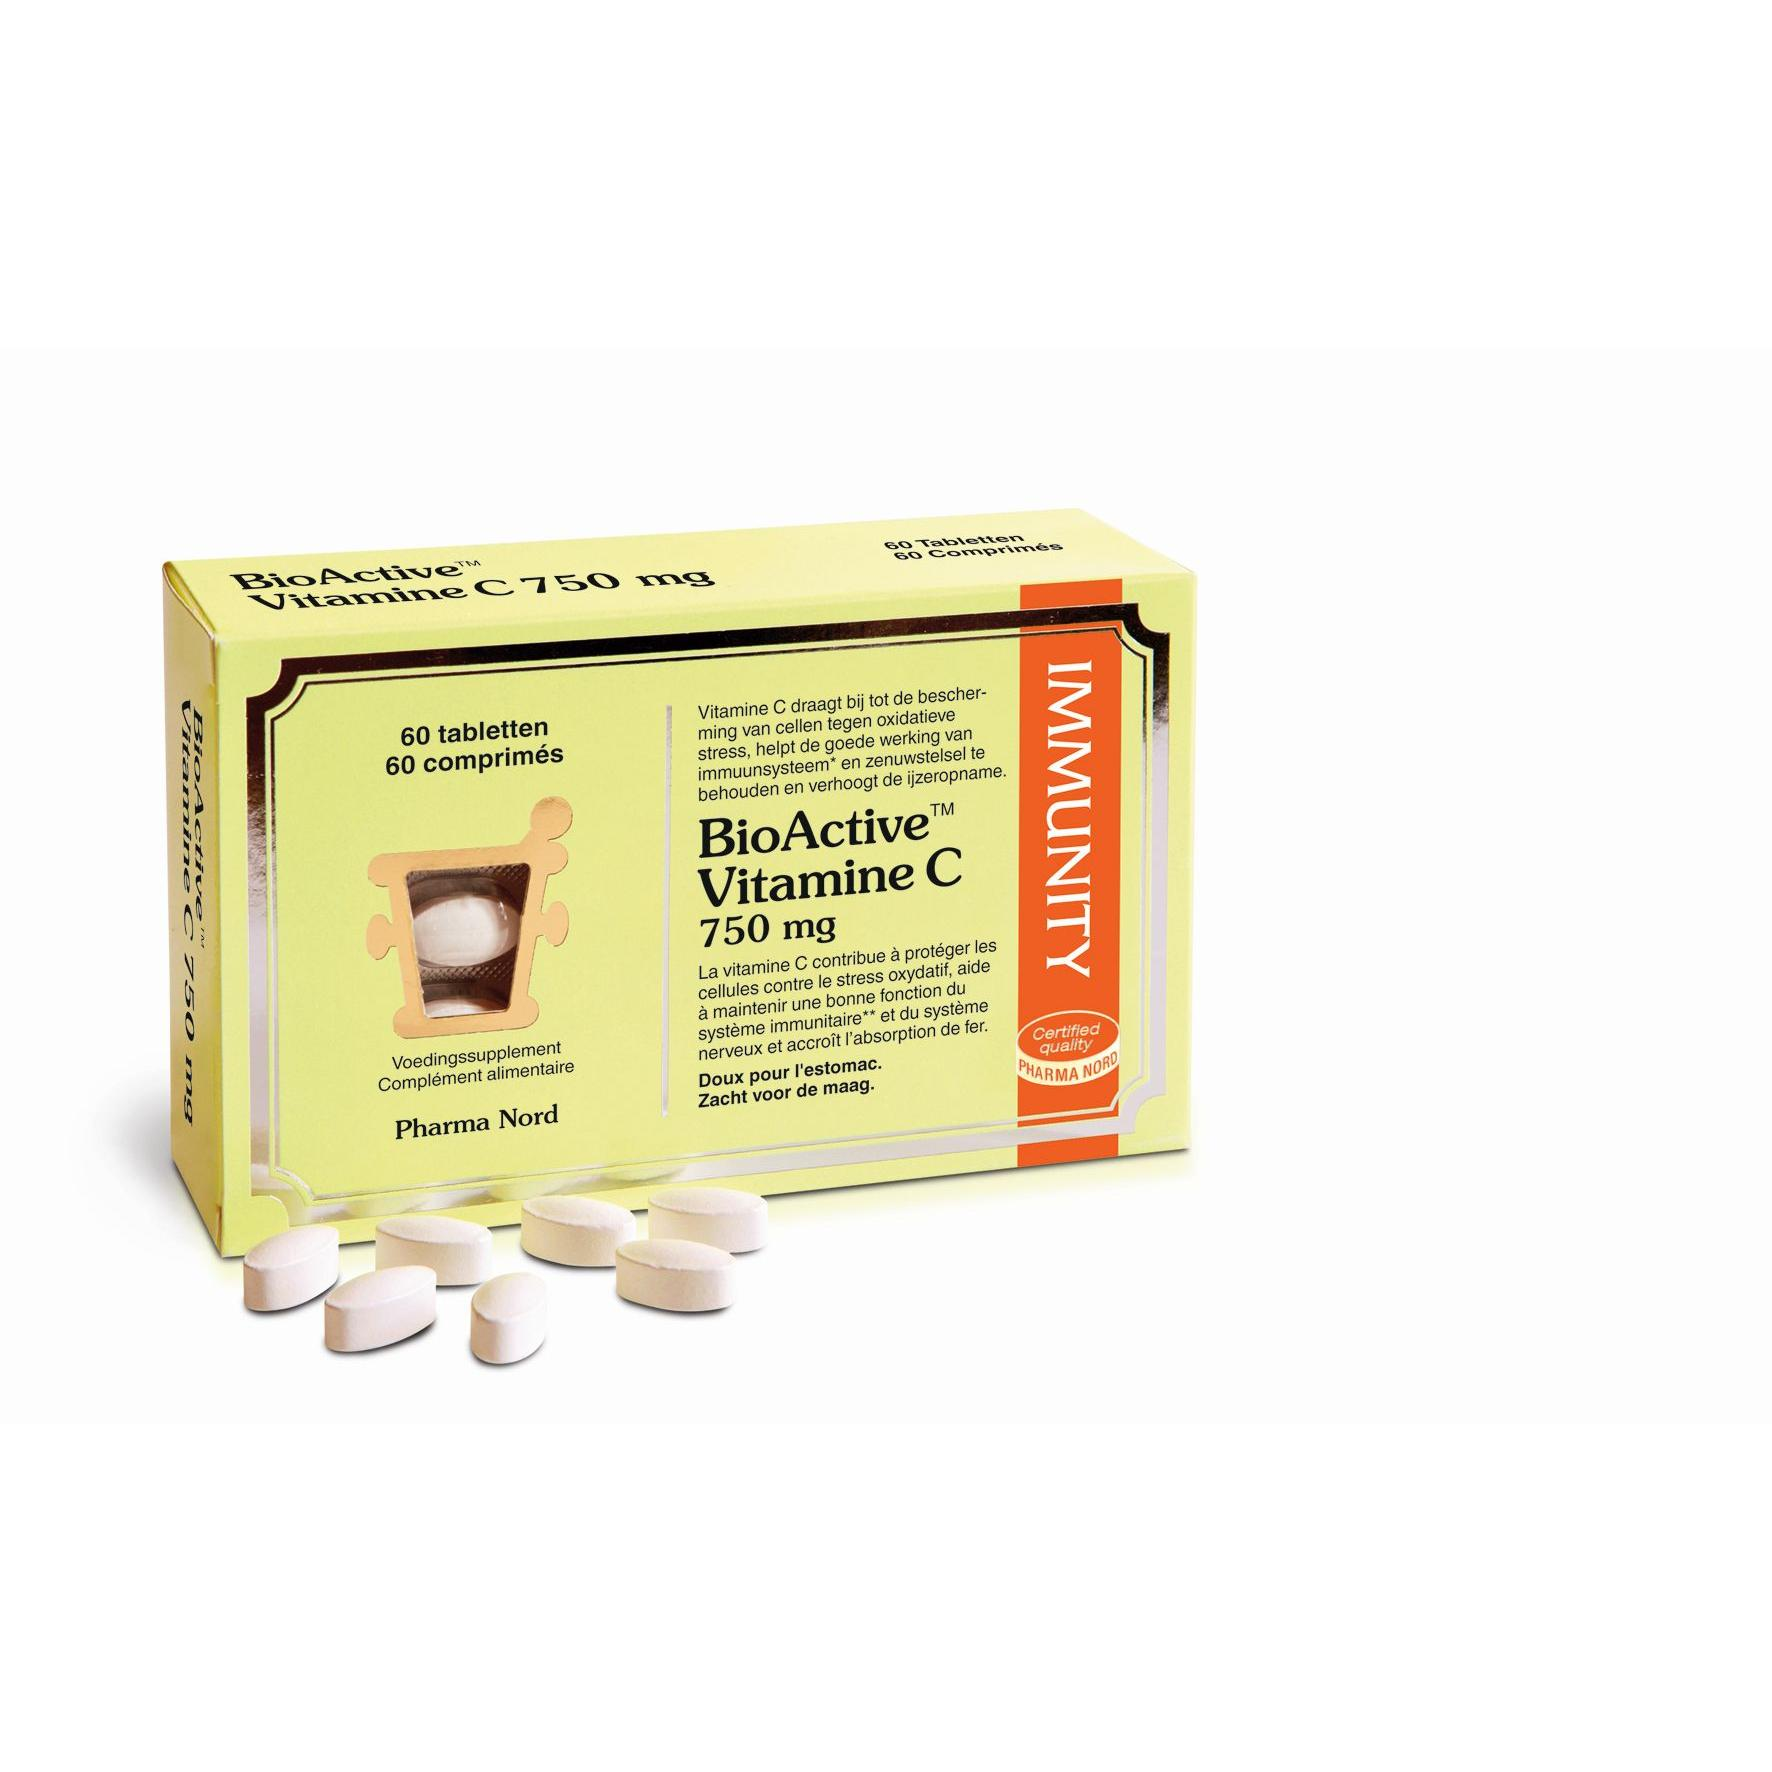 Image of Bioactive vitamine C 750mg Pharma Nord